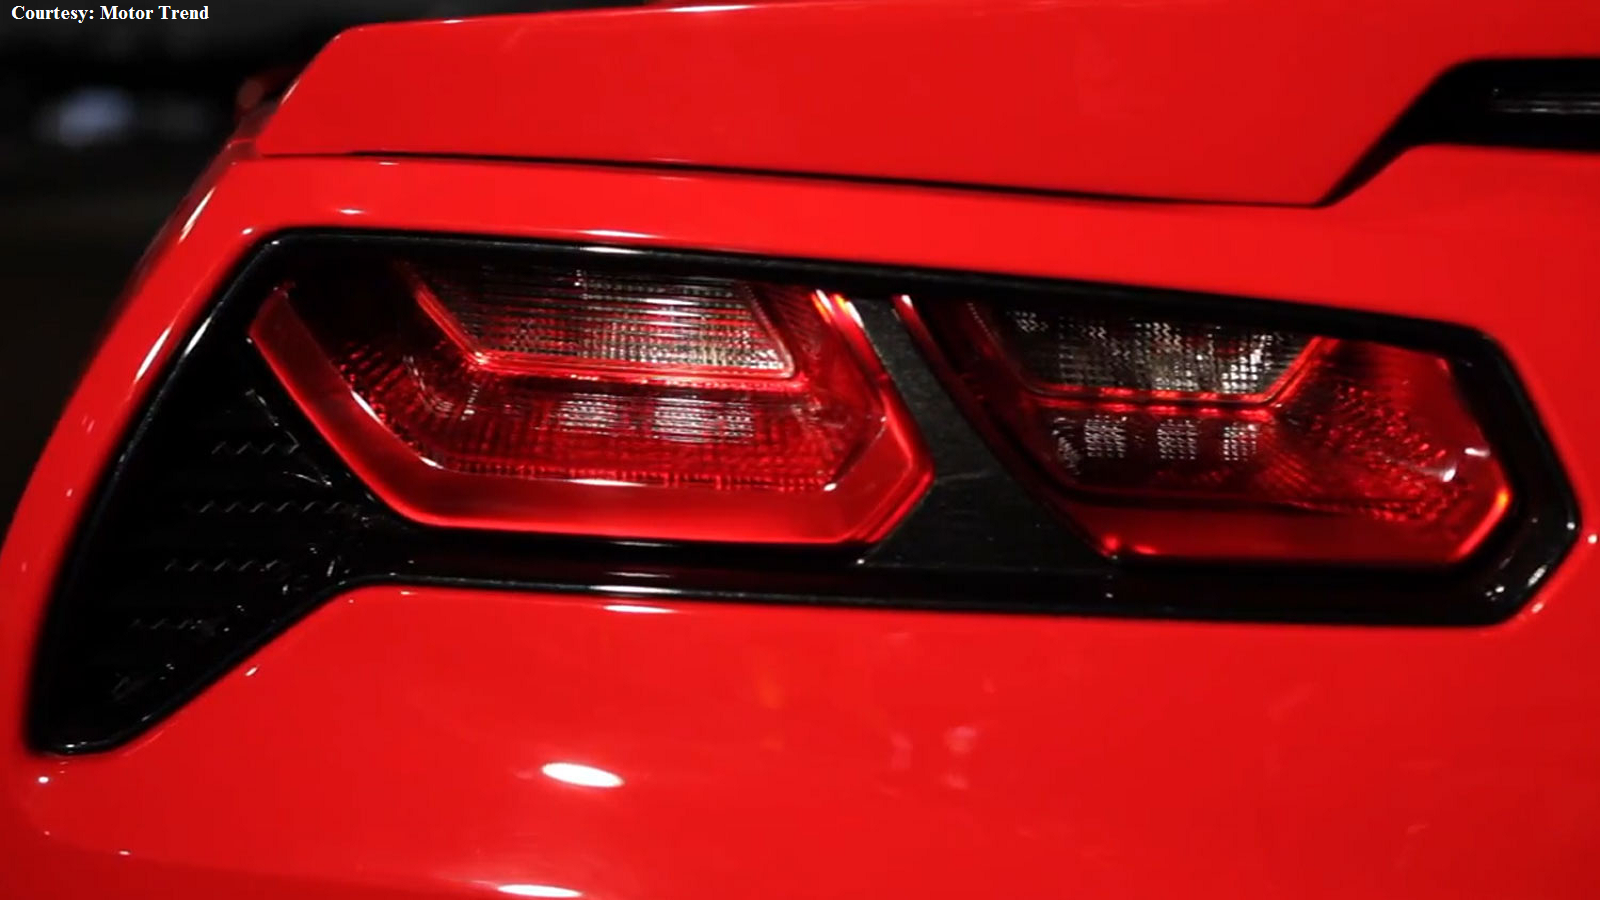 The modern Stingray's flag-shaped tail lights.